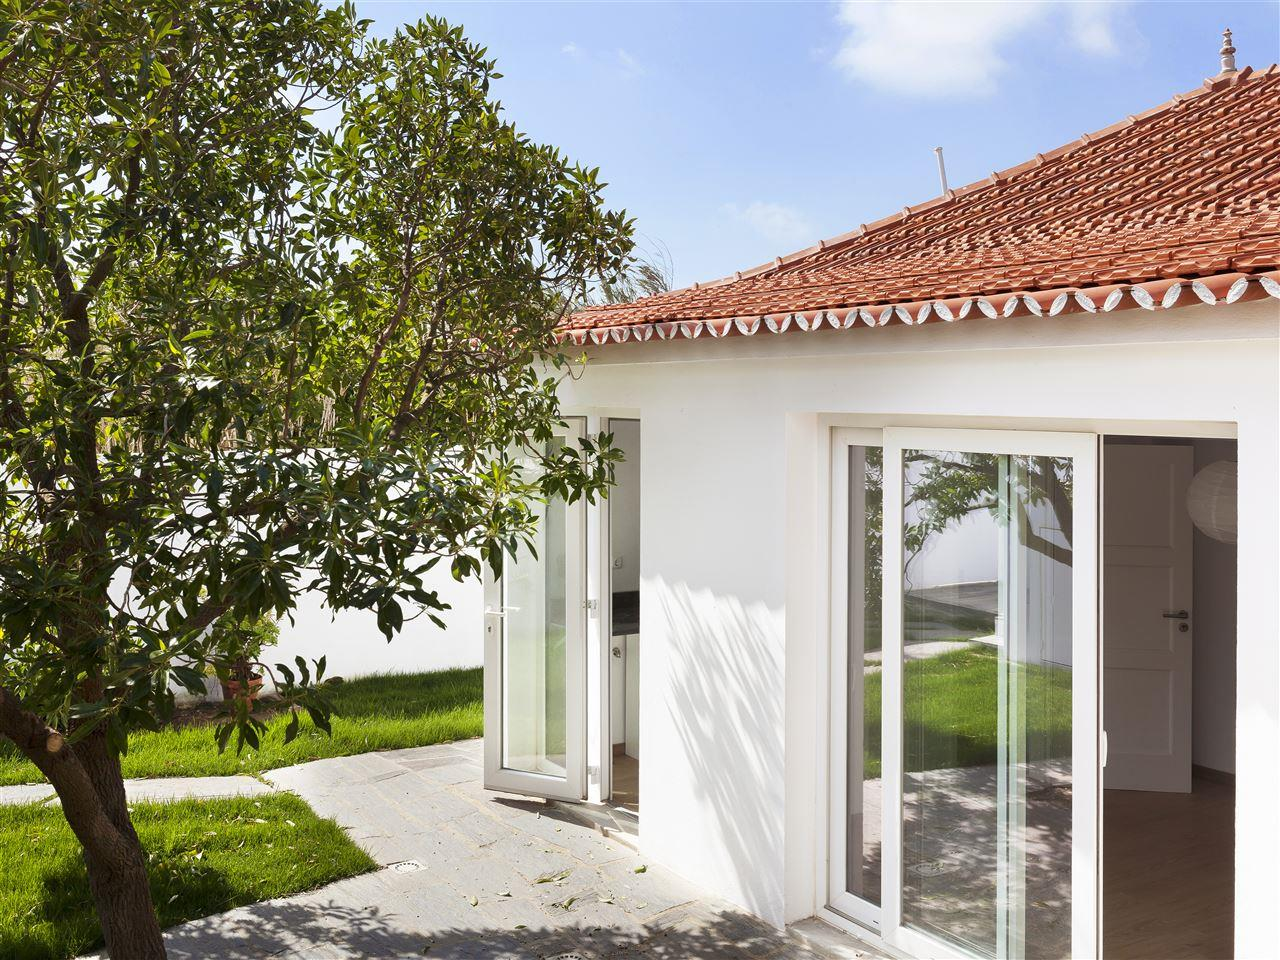 Single Family Home for Sale at Detached house, 2 bedrooms, for Sale Sintra, Lisboa, Portugal